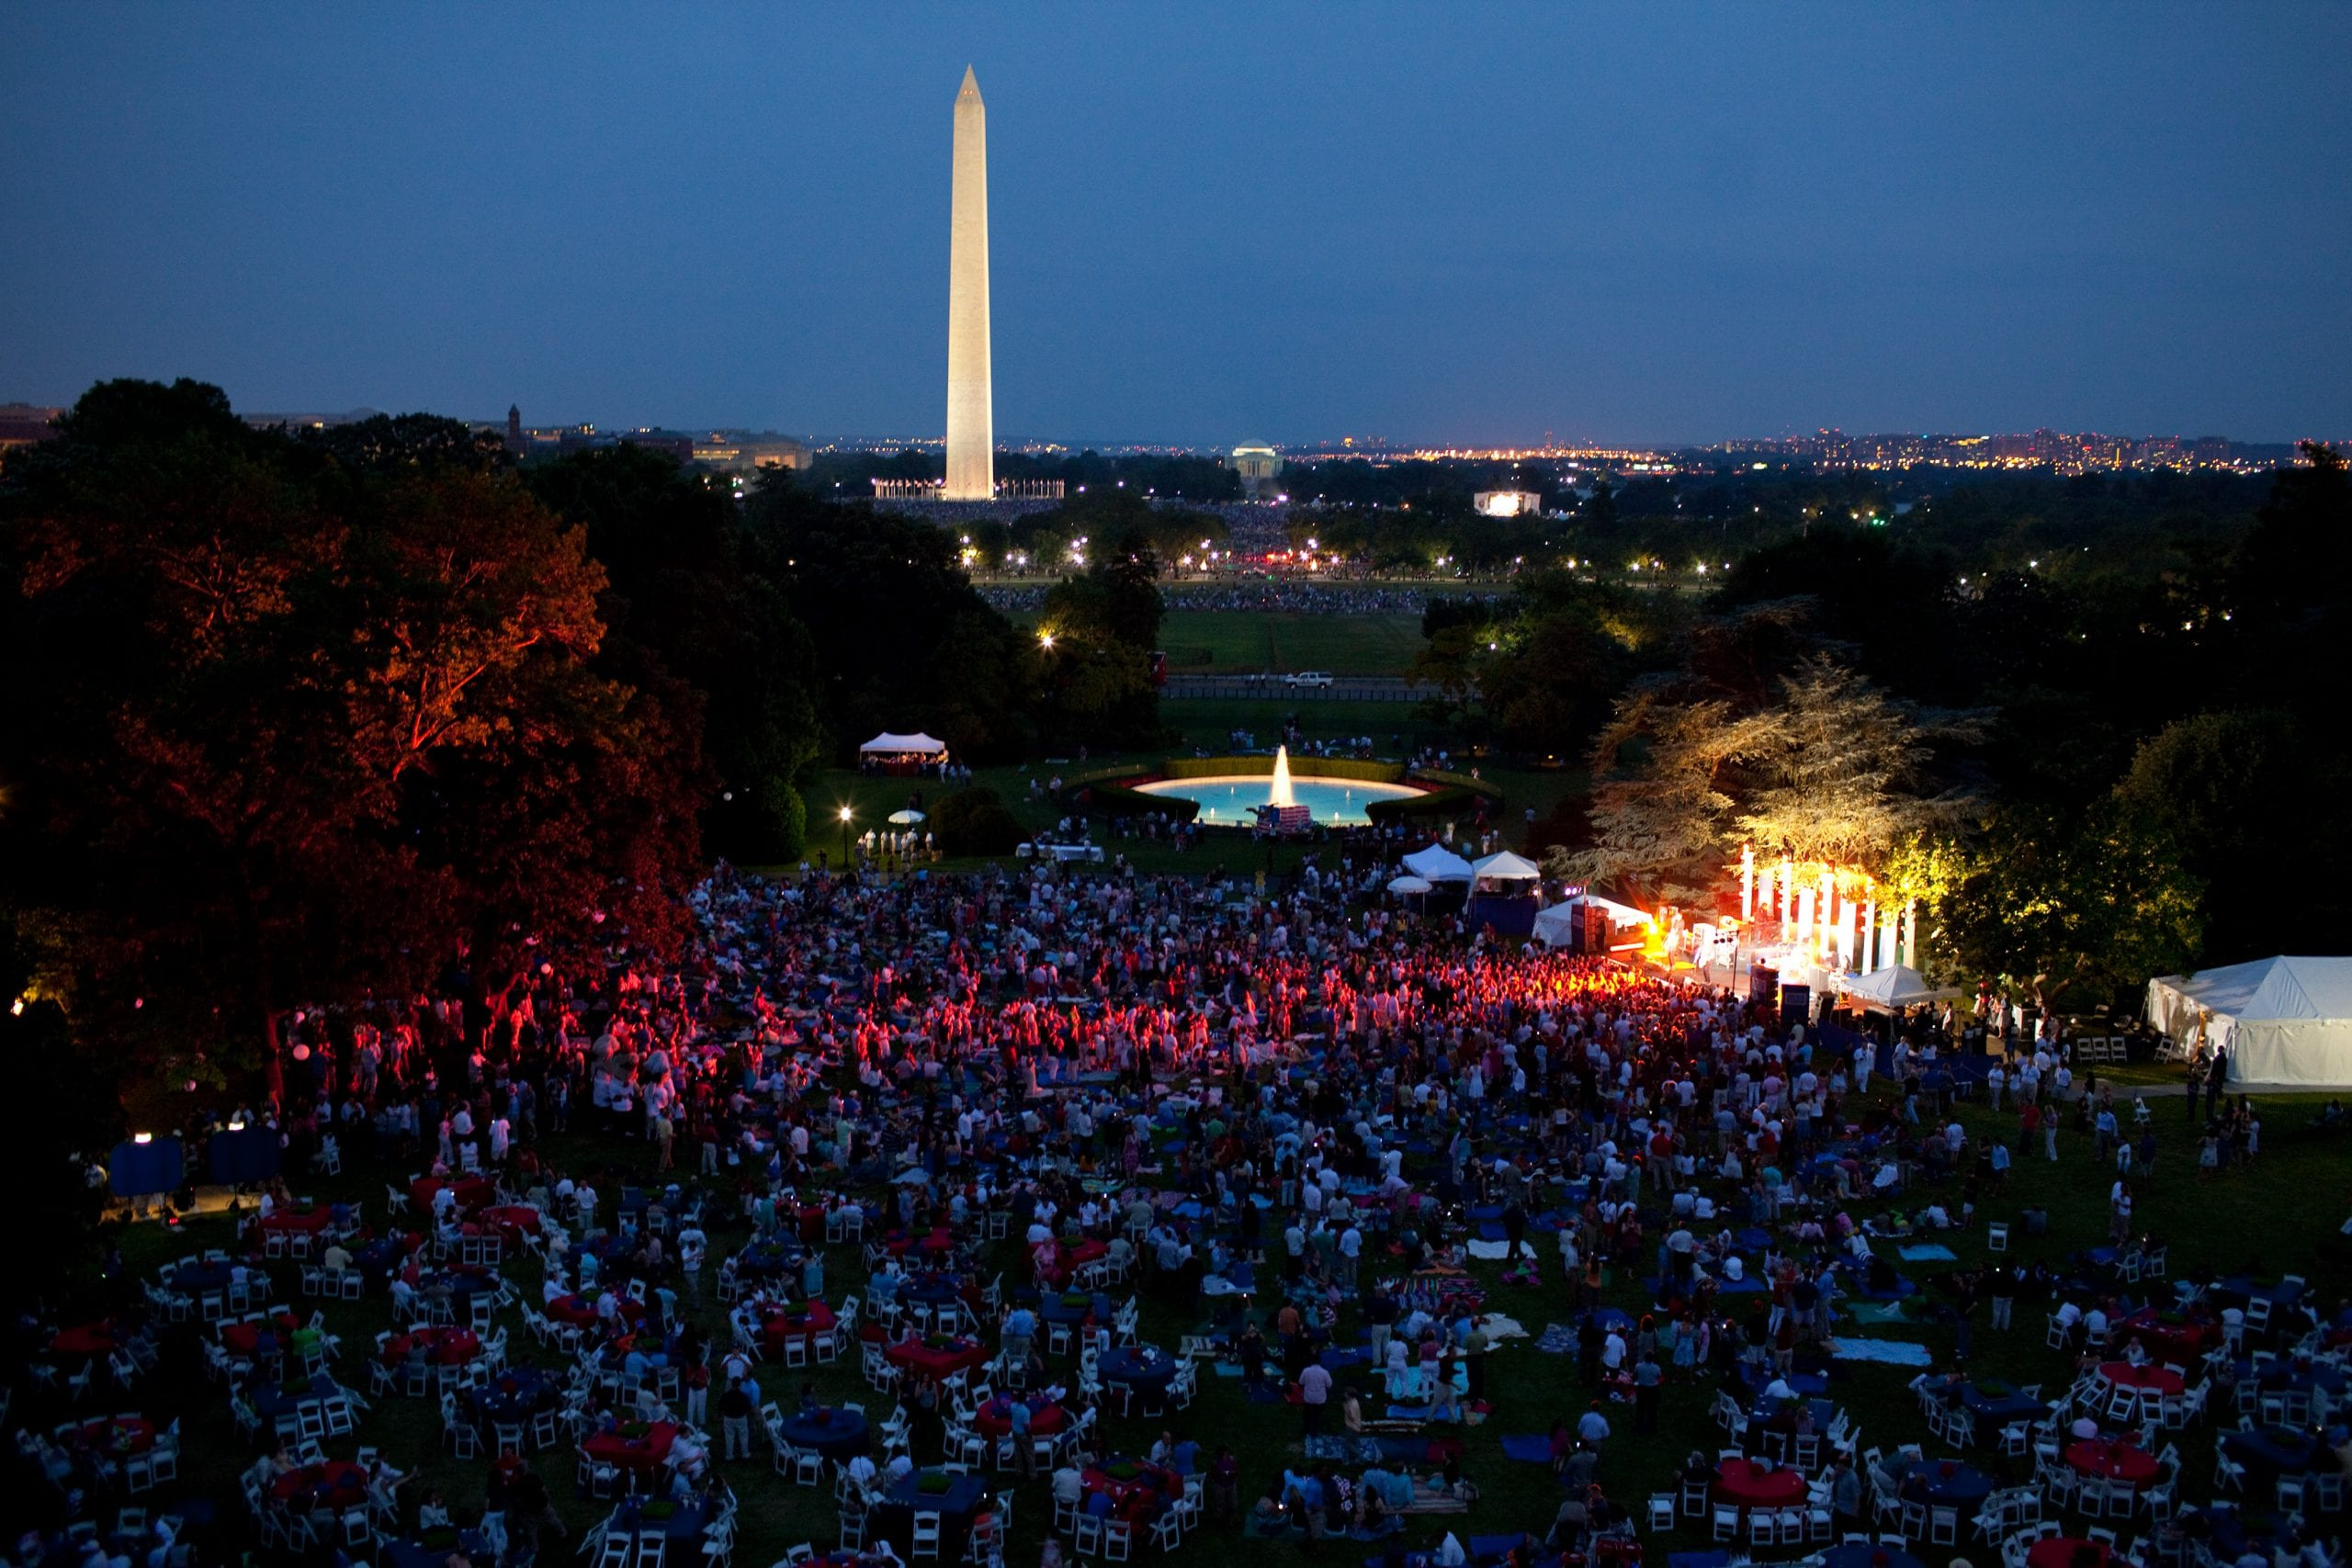 The view of the South Lawn of the White House as the Foo Fighters performed on July 4, 2009. (Official White House photo by Pete Souza)